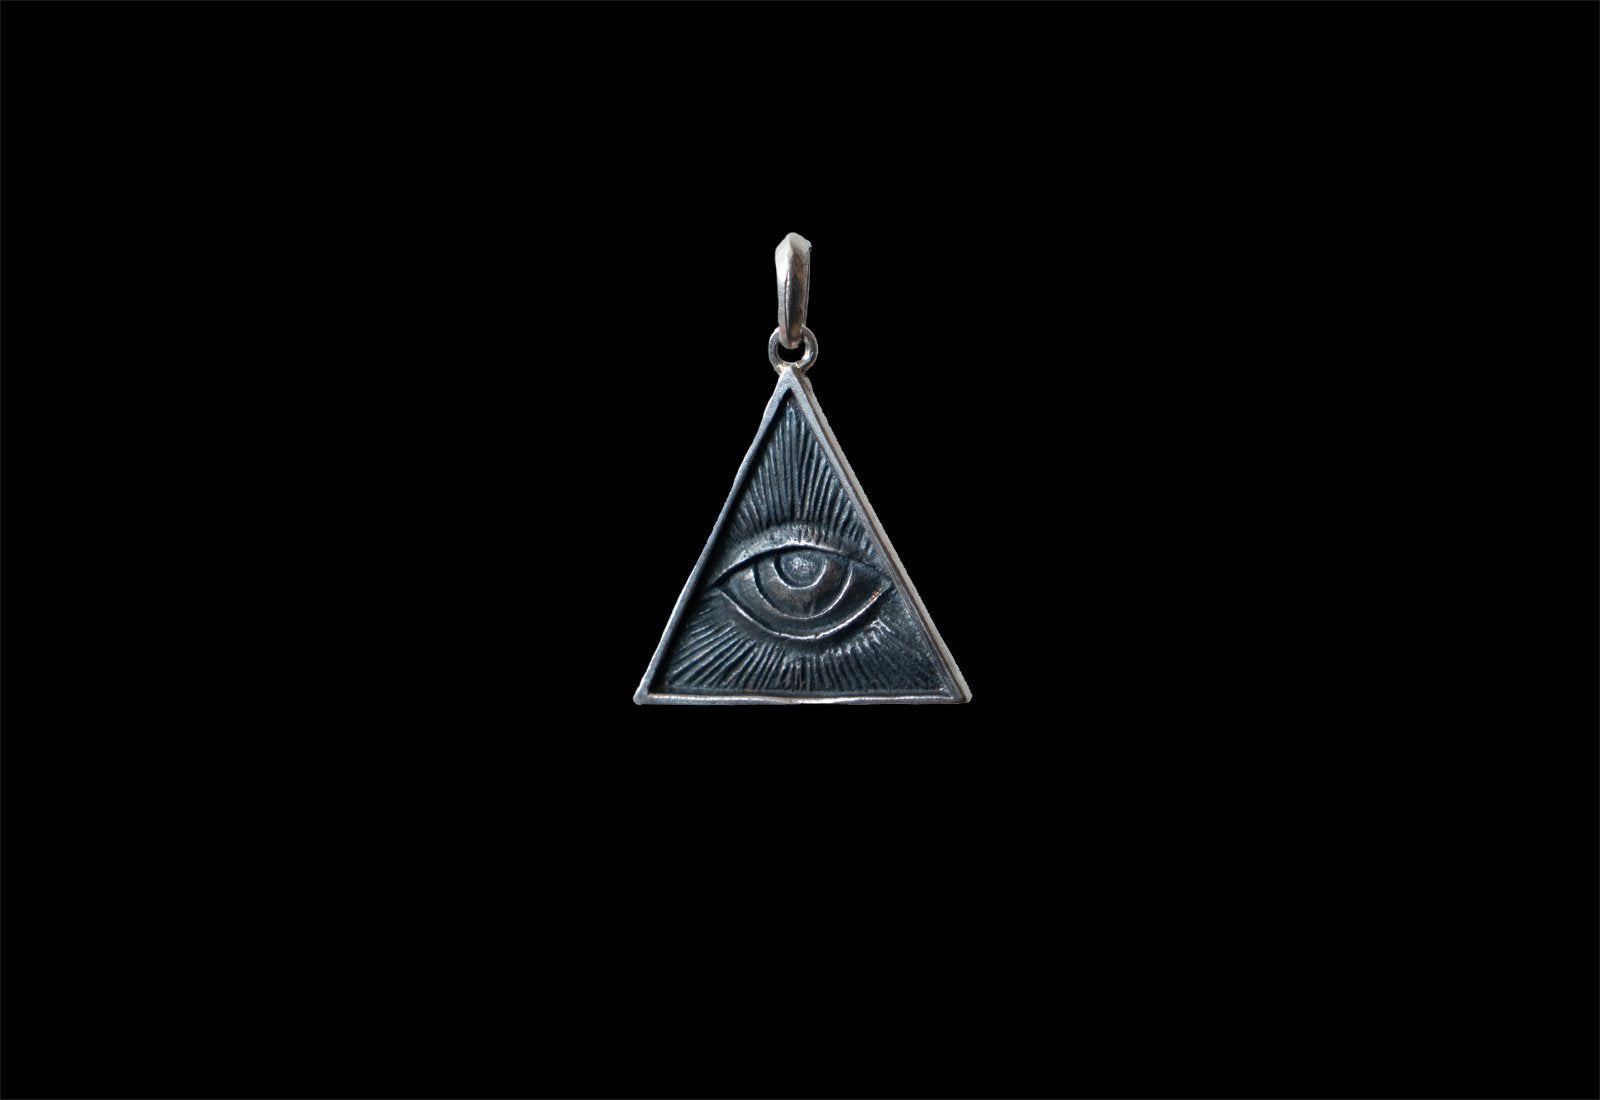 MASON EYE OF THE PROVIDENCE TRIANGLE